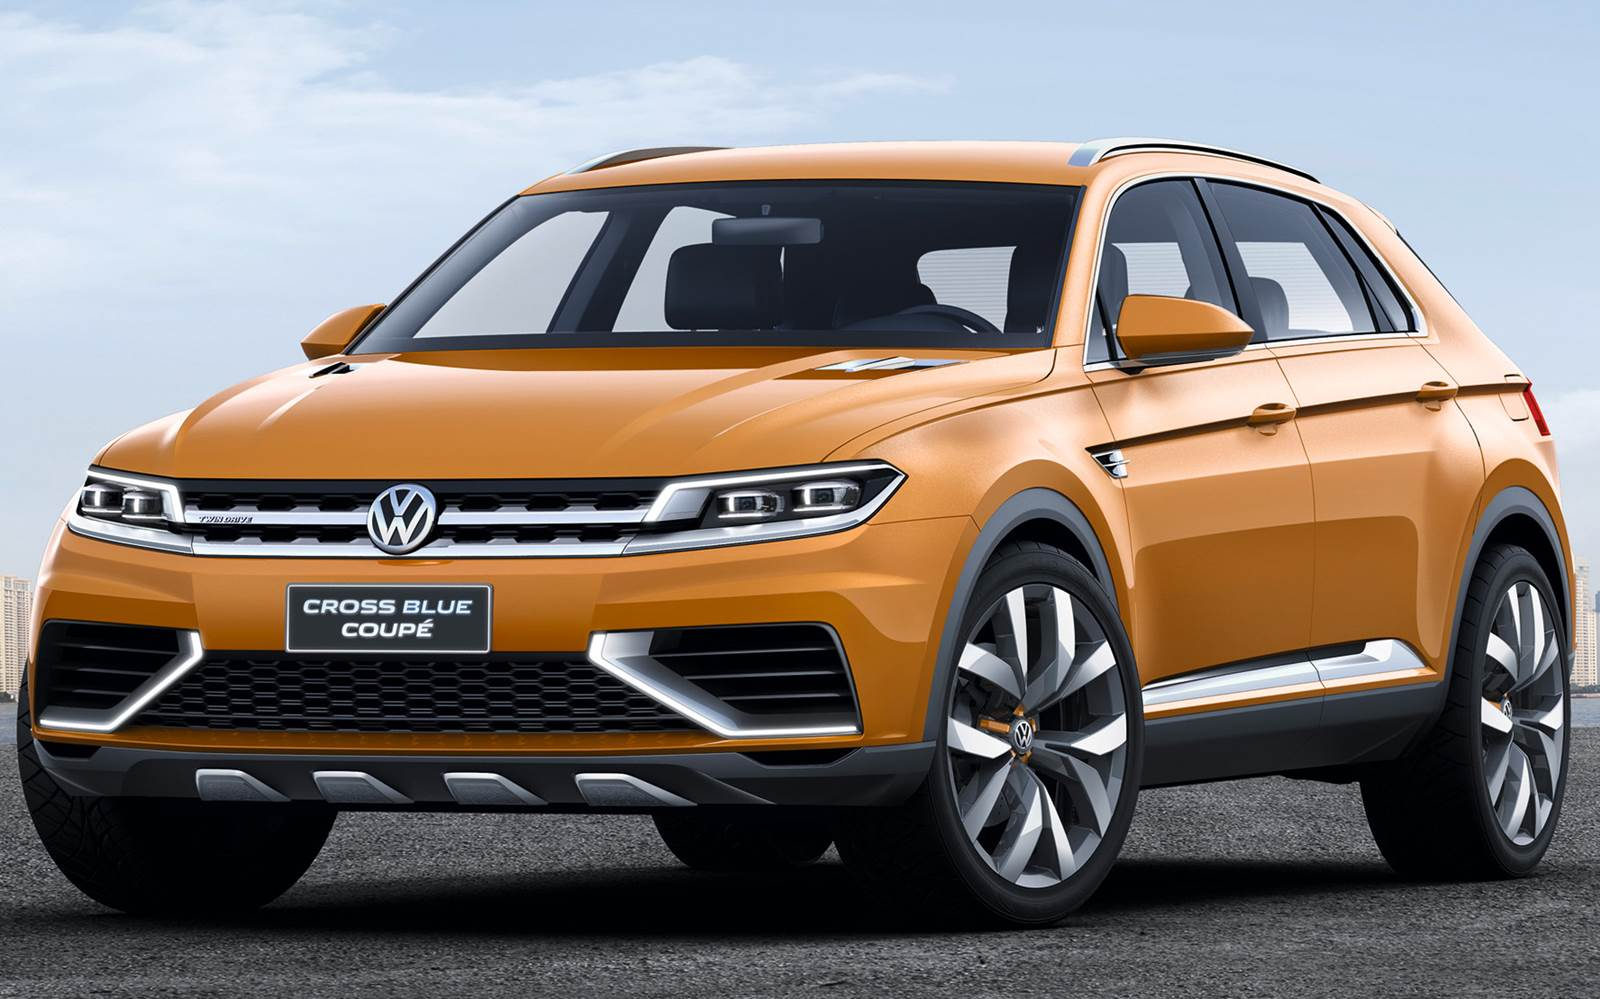 volkswagen prepara ofensiva com 5 novos suv at 2017 car blog br. Black Bedroom Furniture Sets. Home Design Ideas